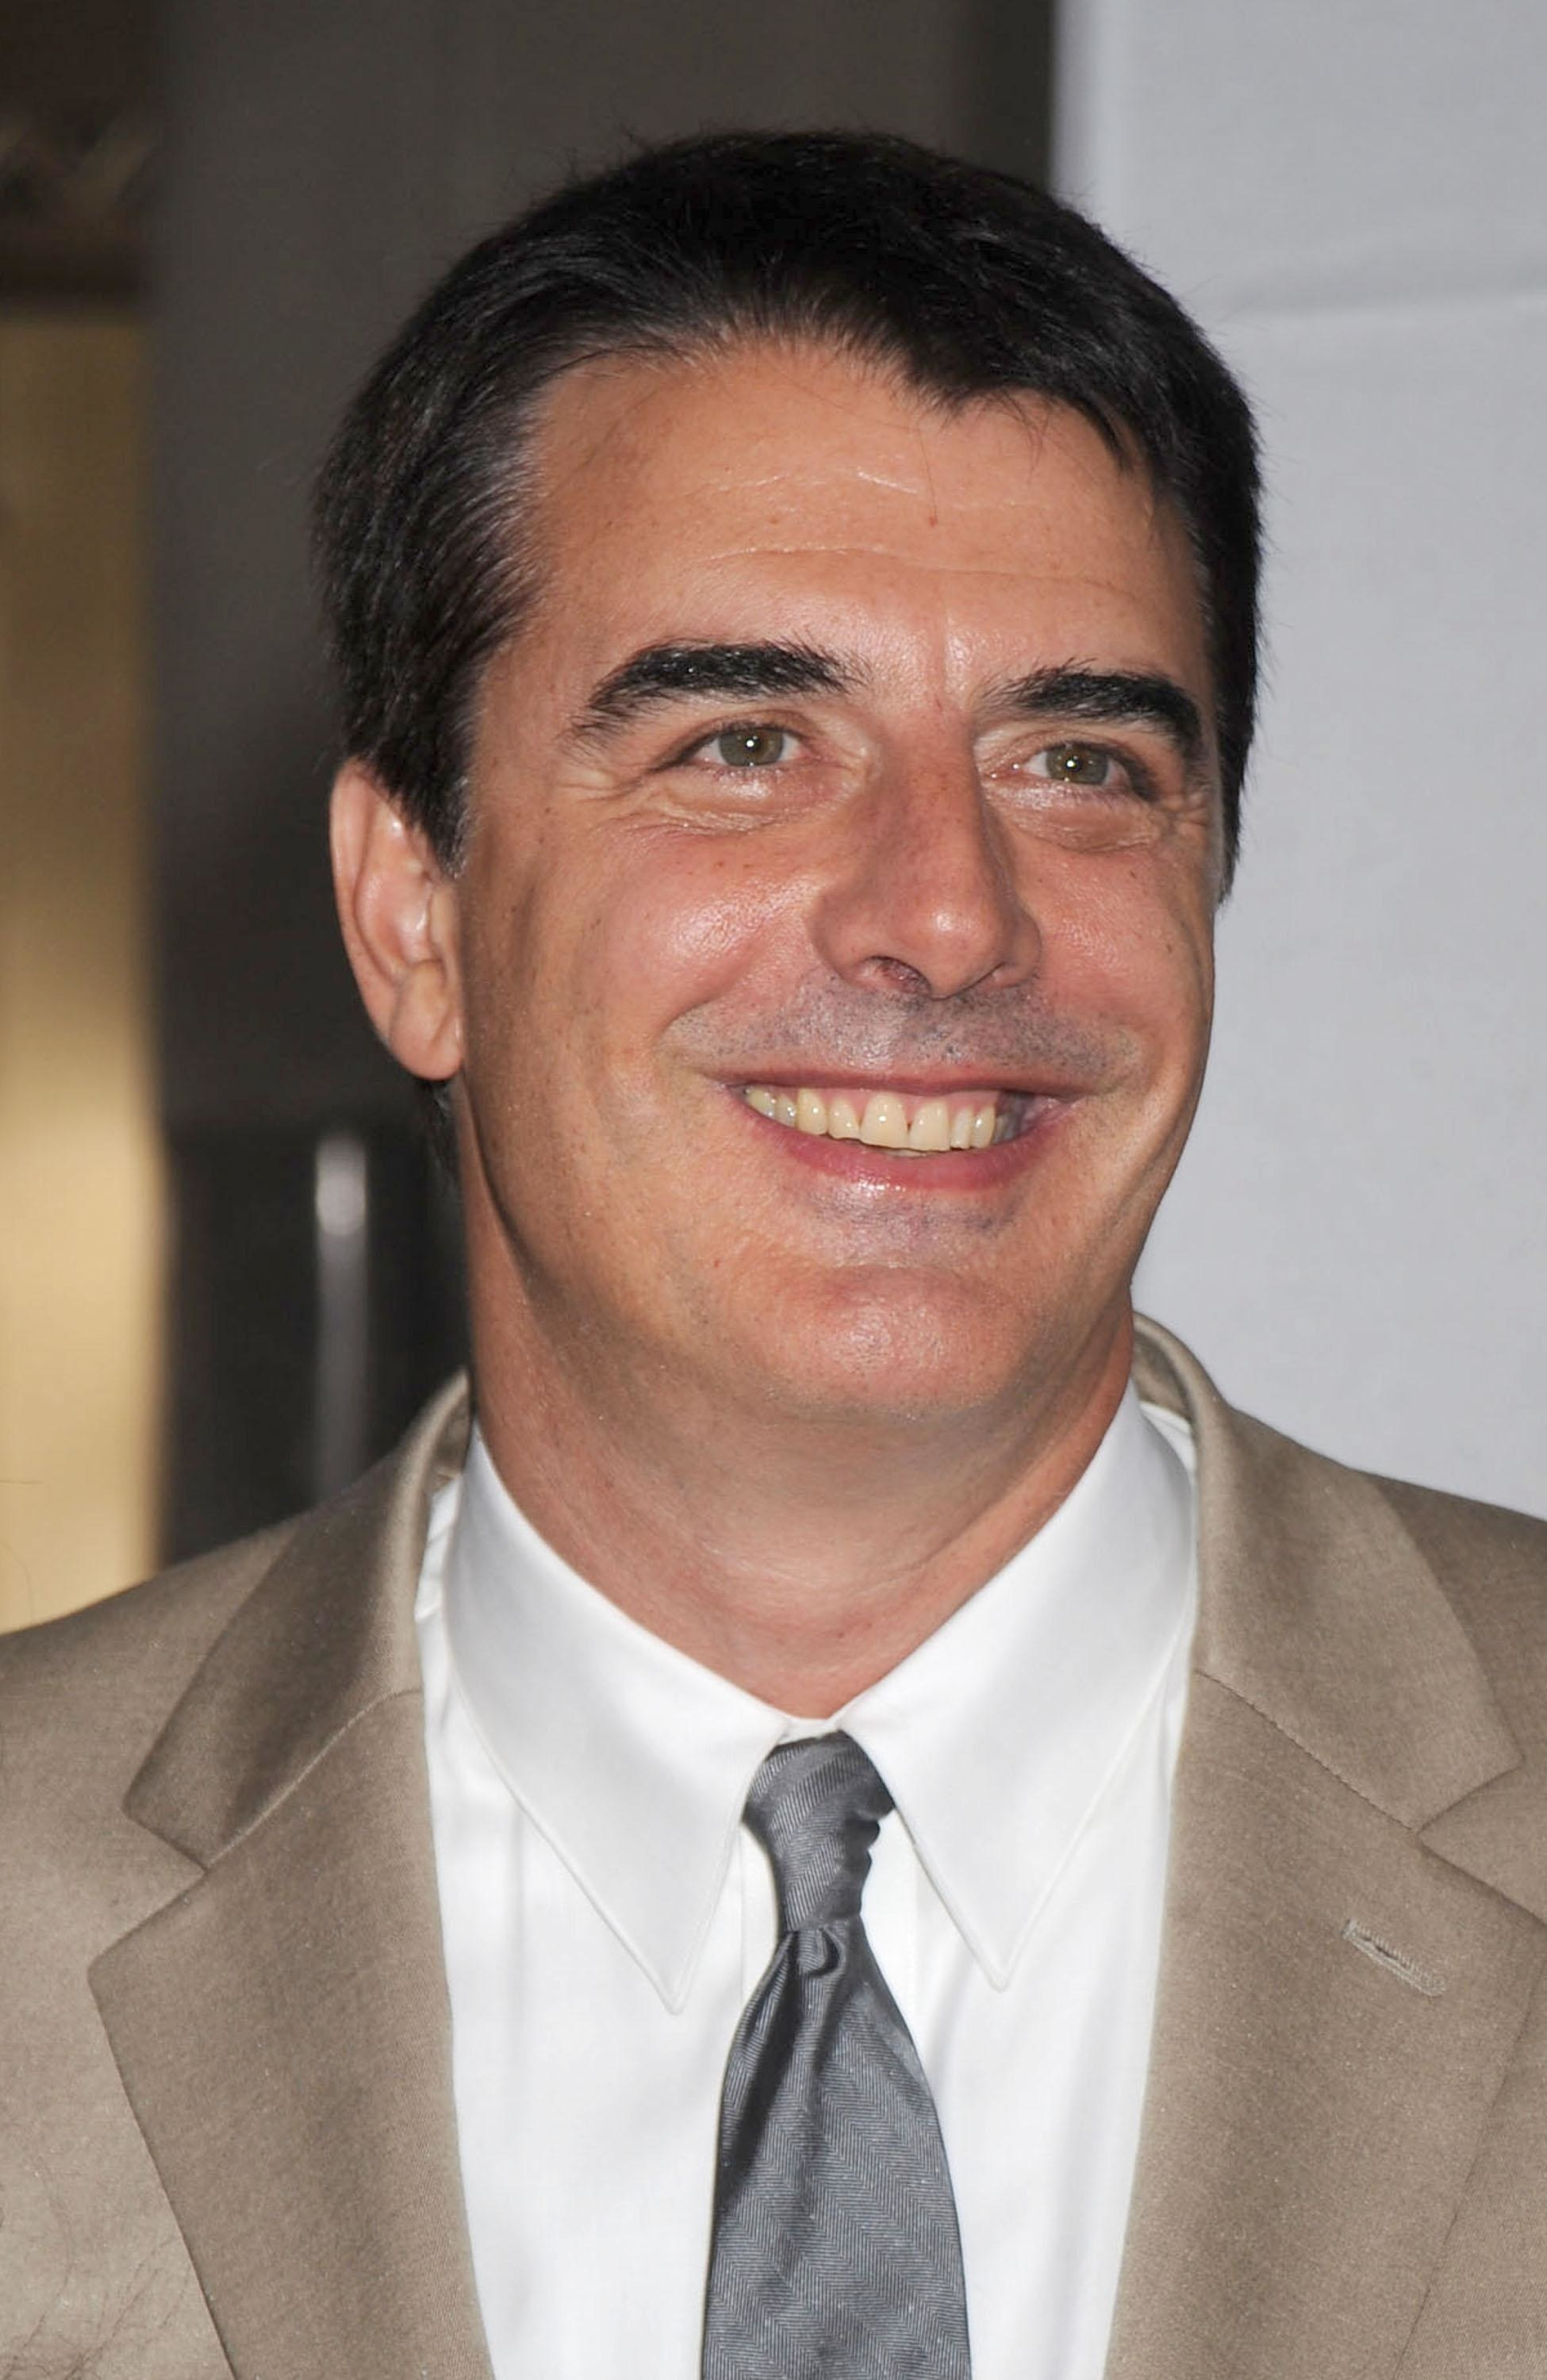 Noth at the premiere of Sex and the City in 2008